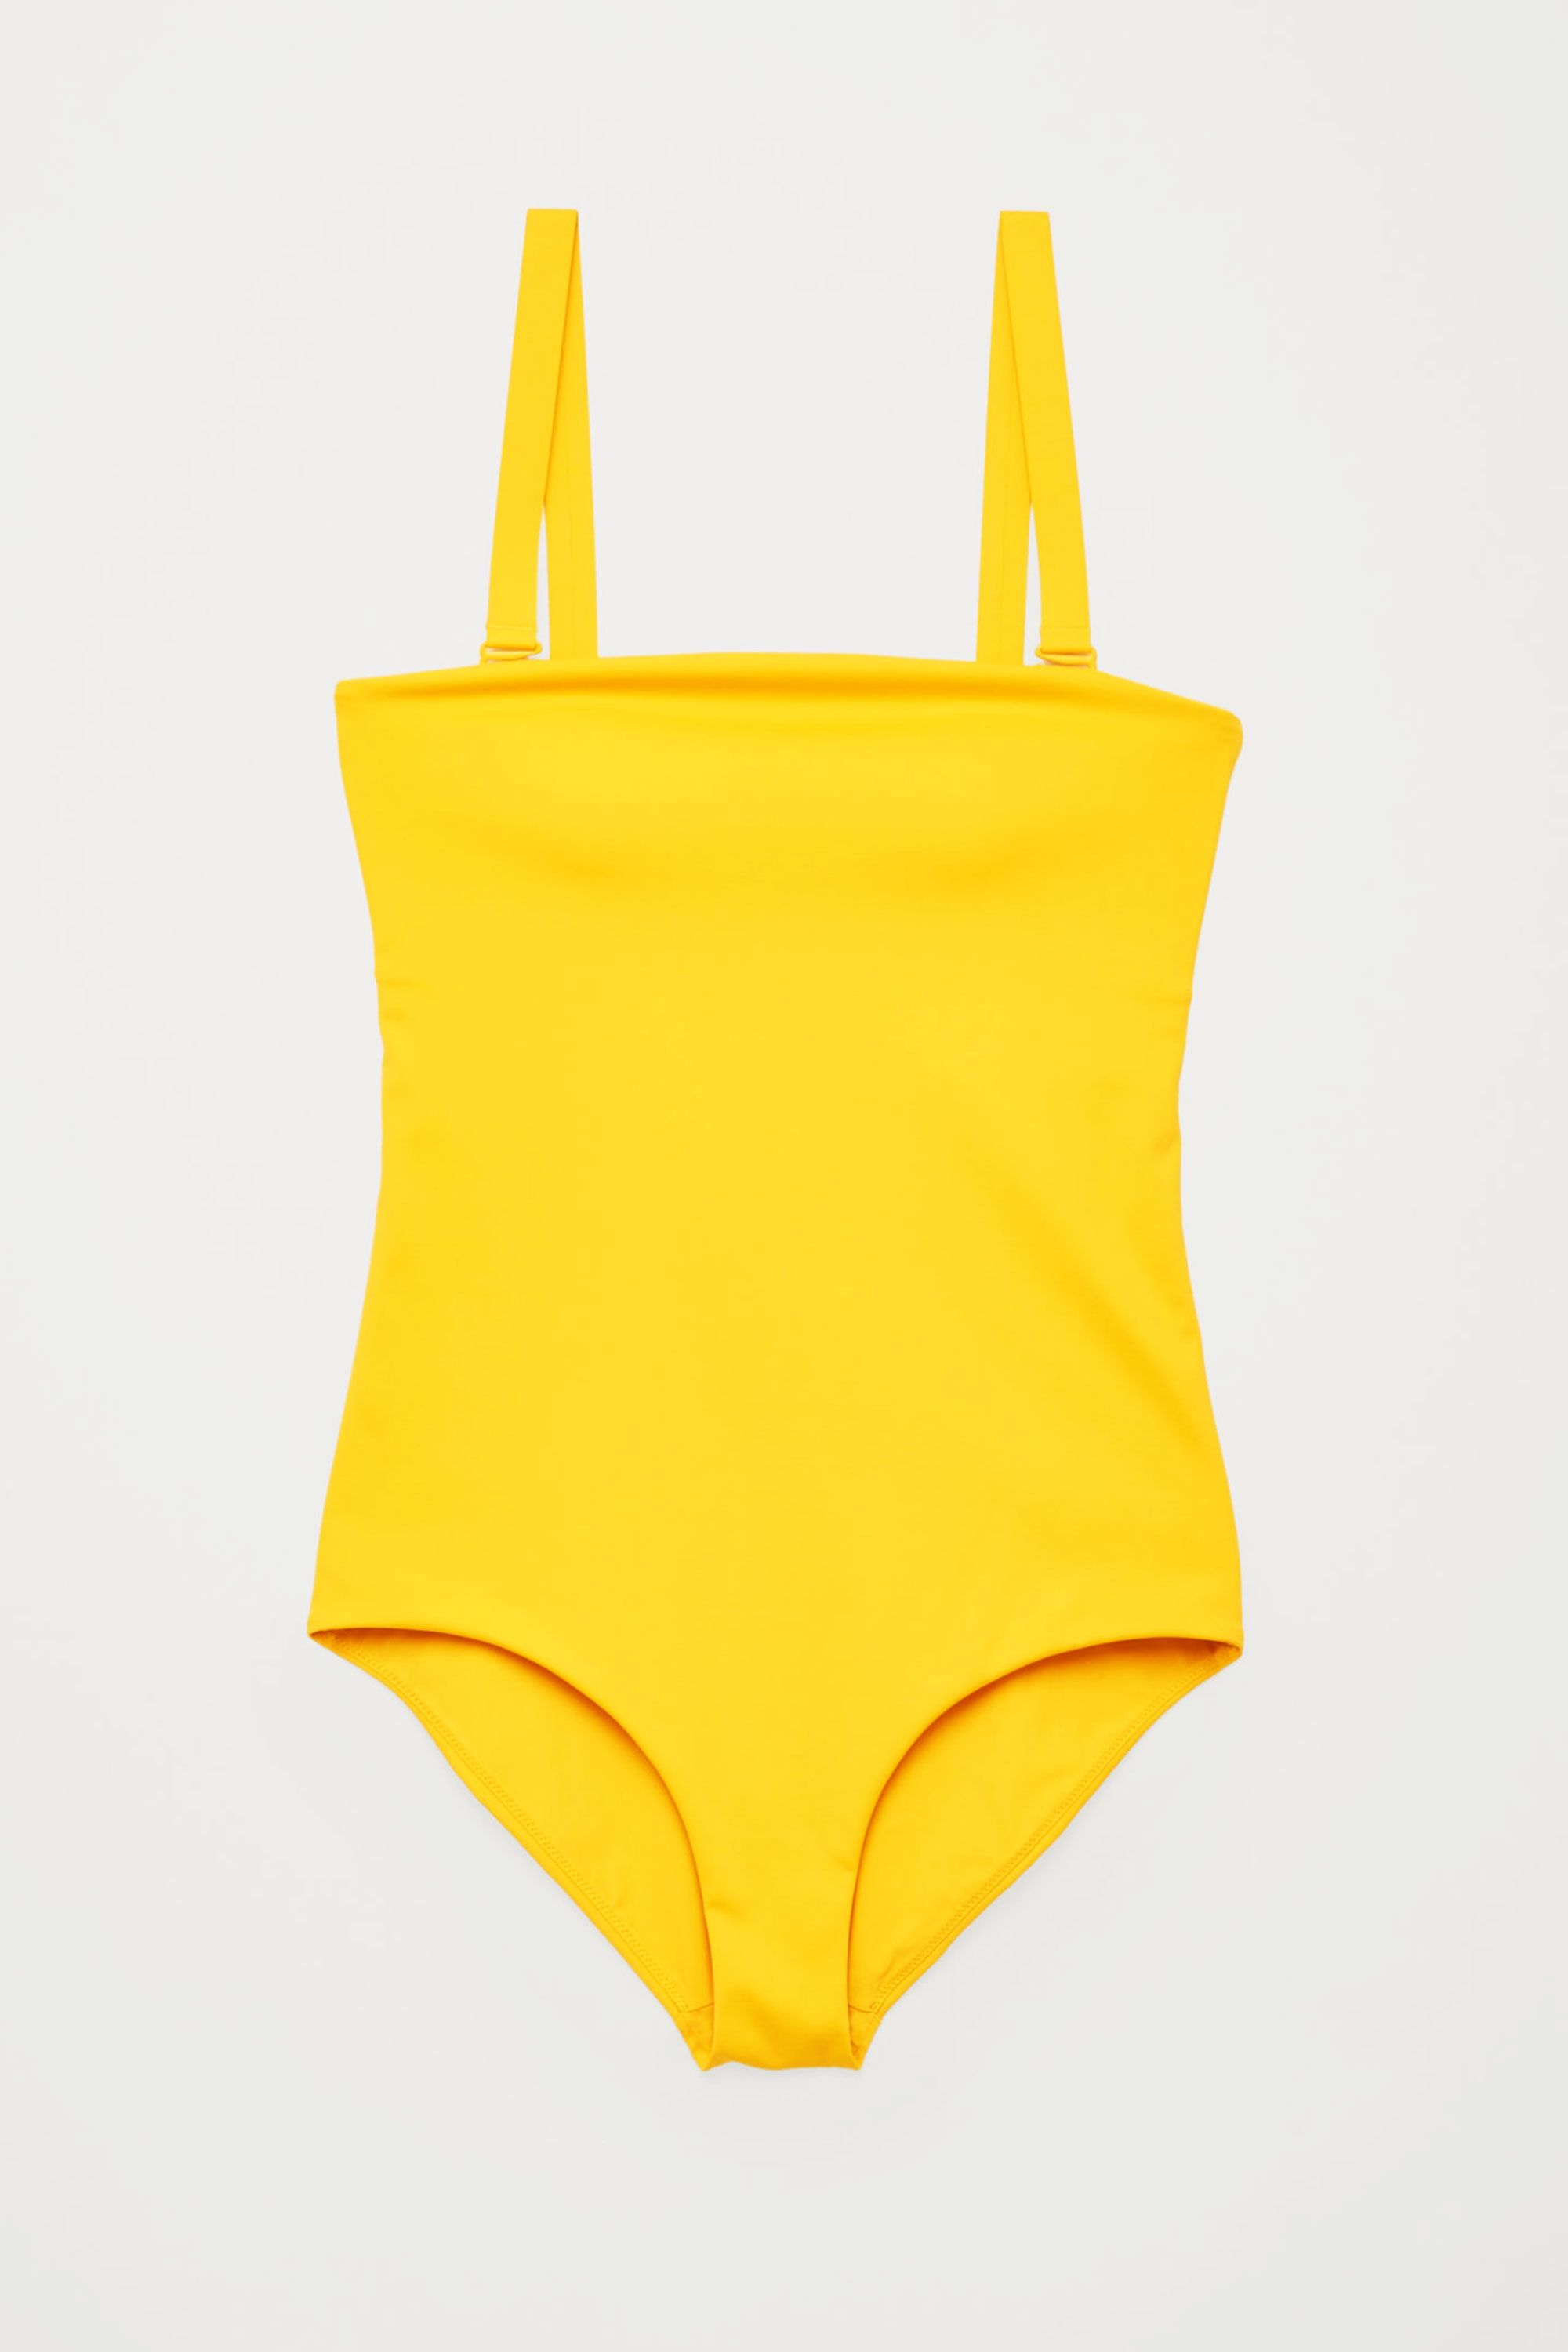 f13c64a5be Best swimsuits for summer - best swimming costumes